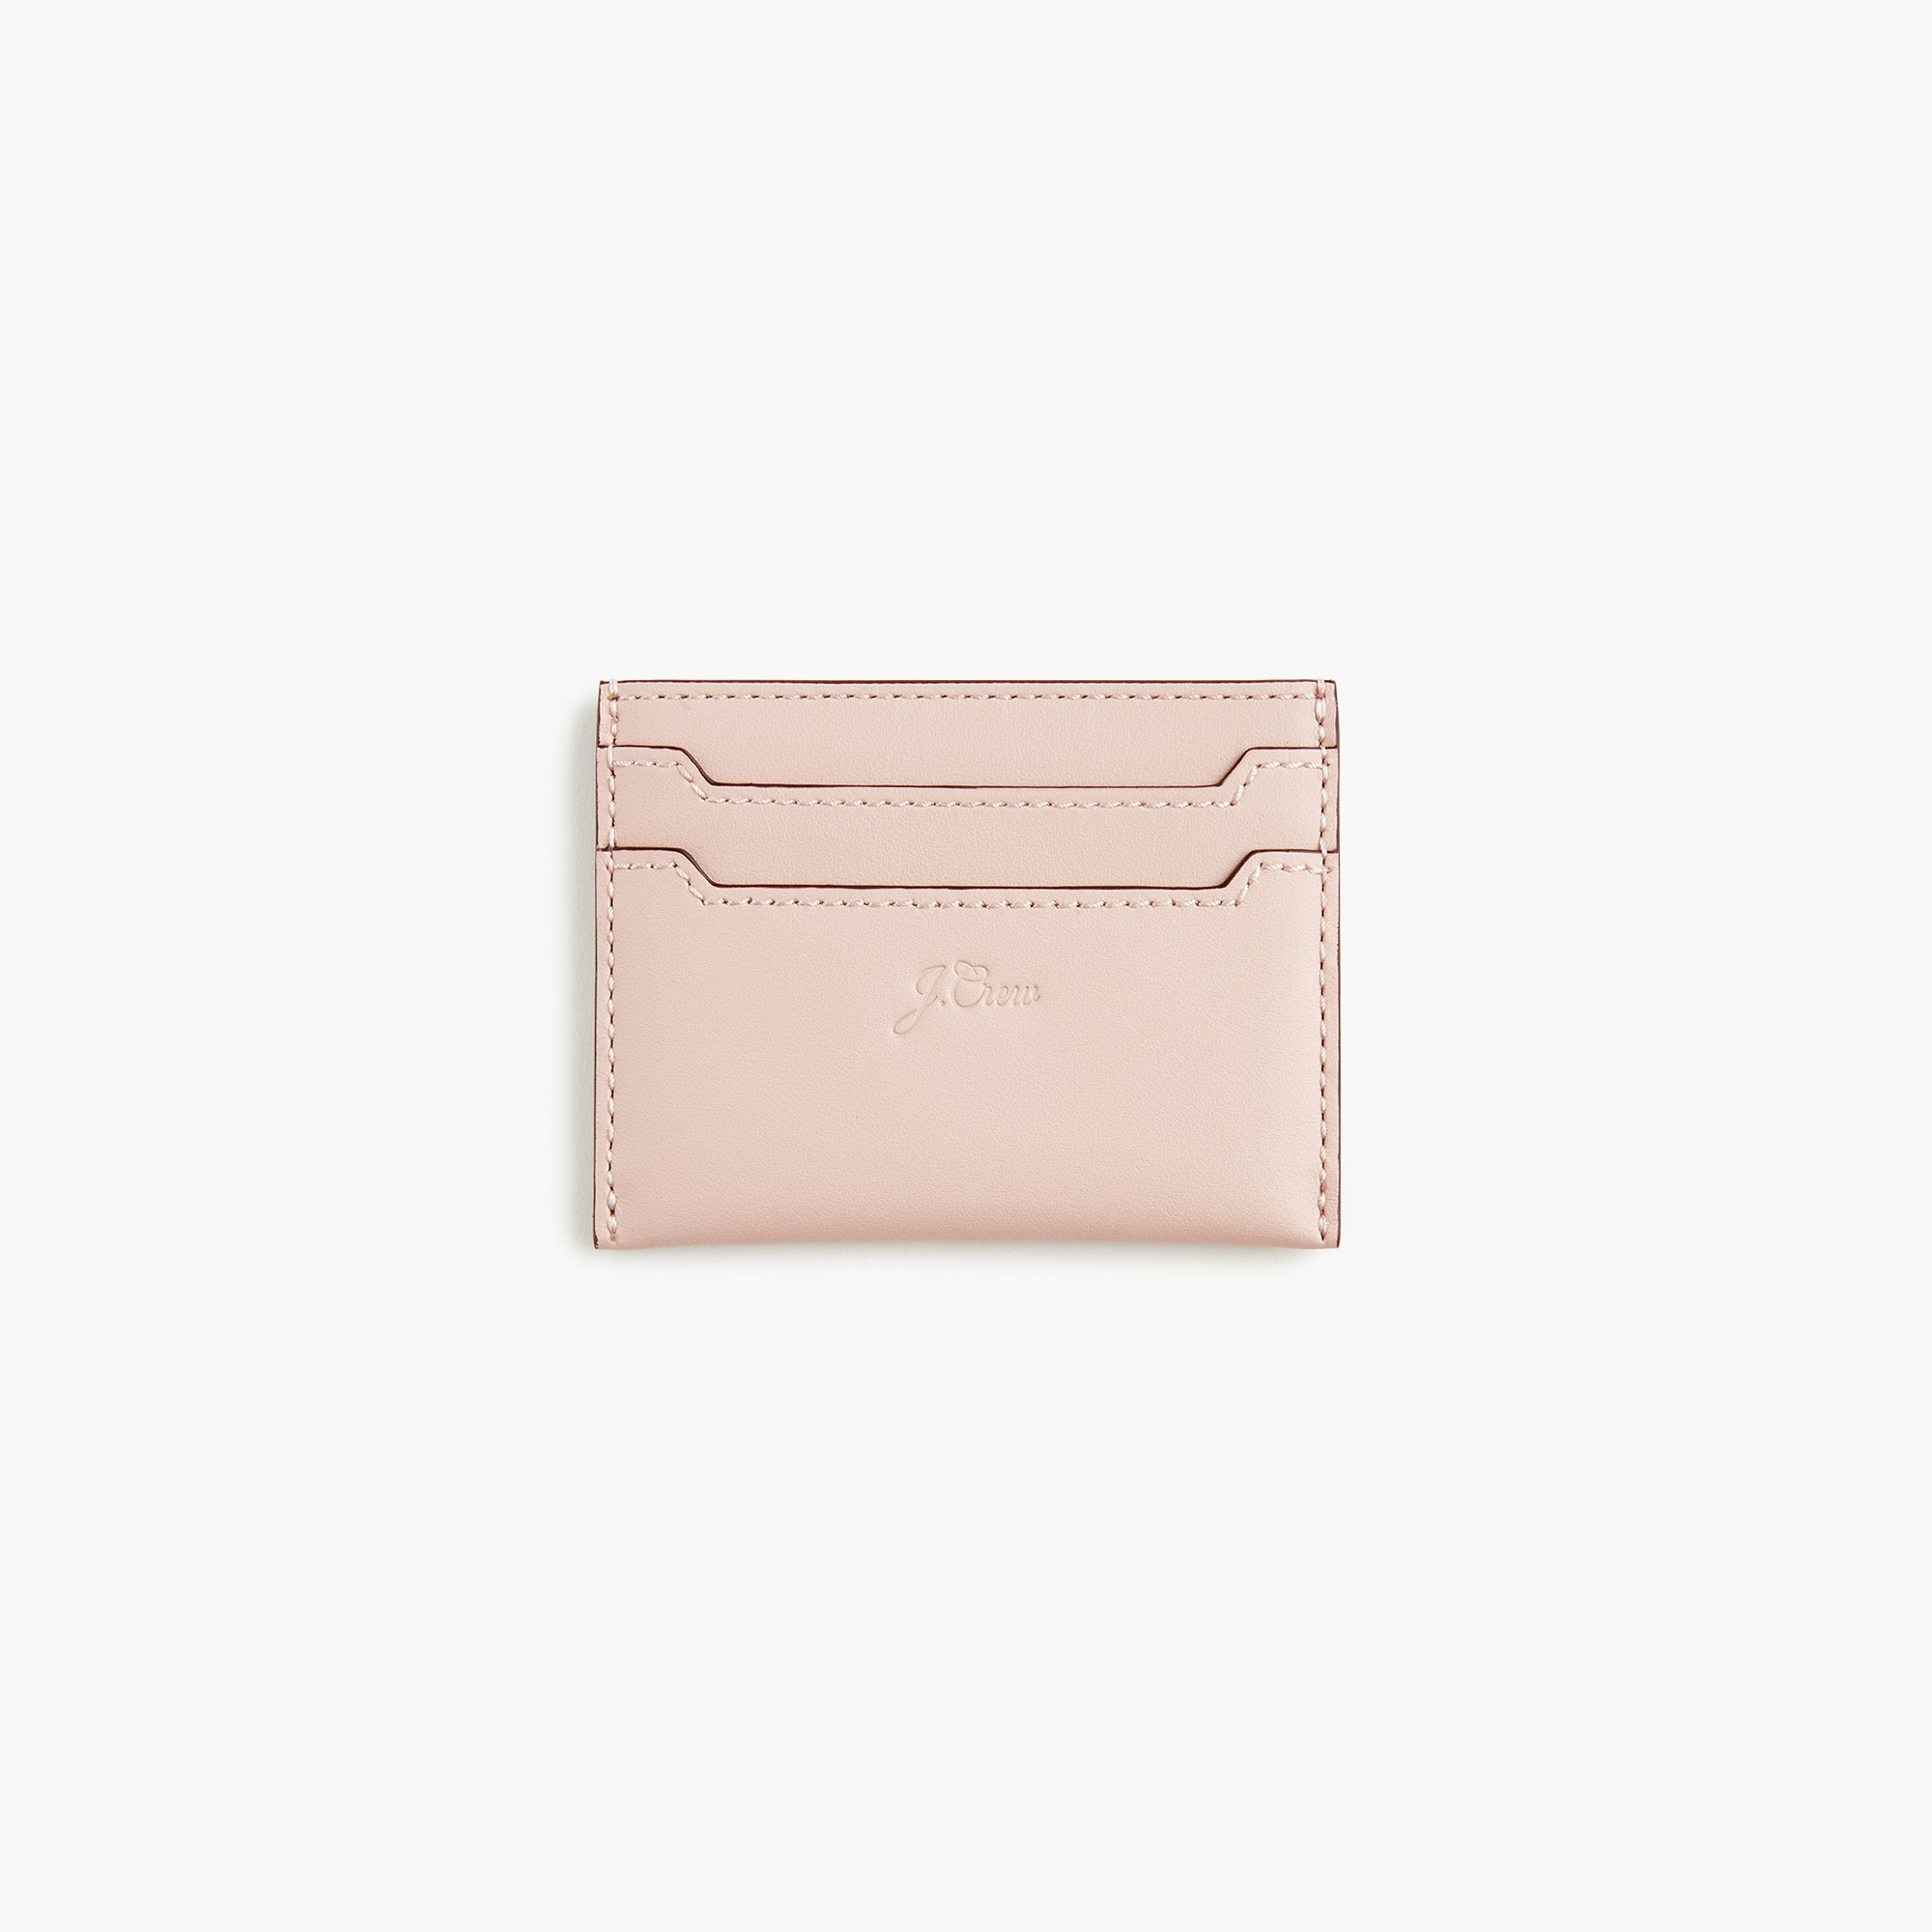 Image 1 for Italian leather card case